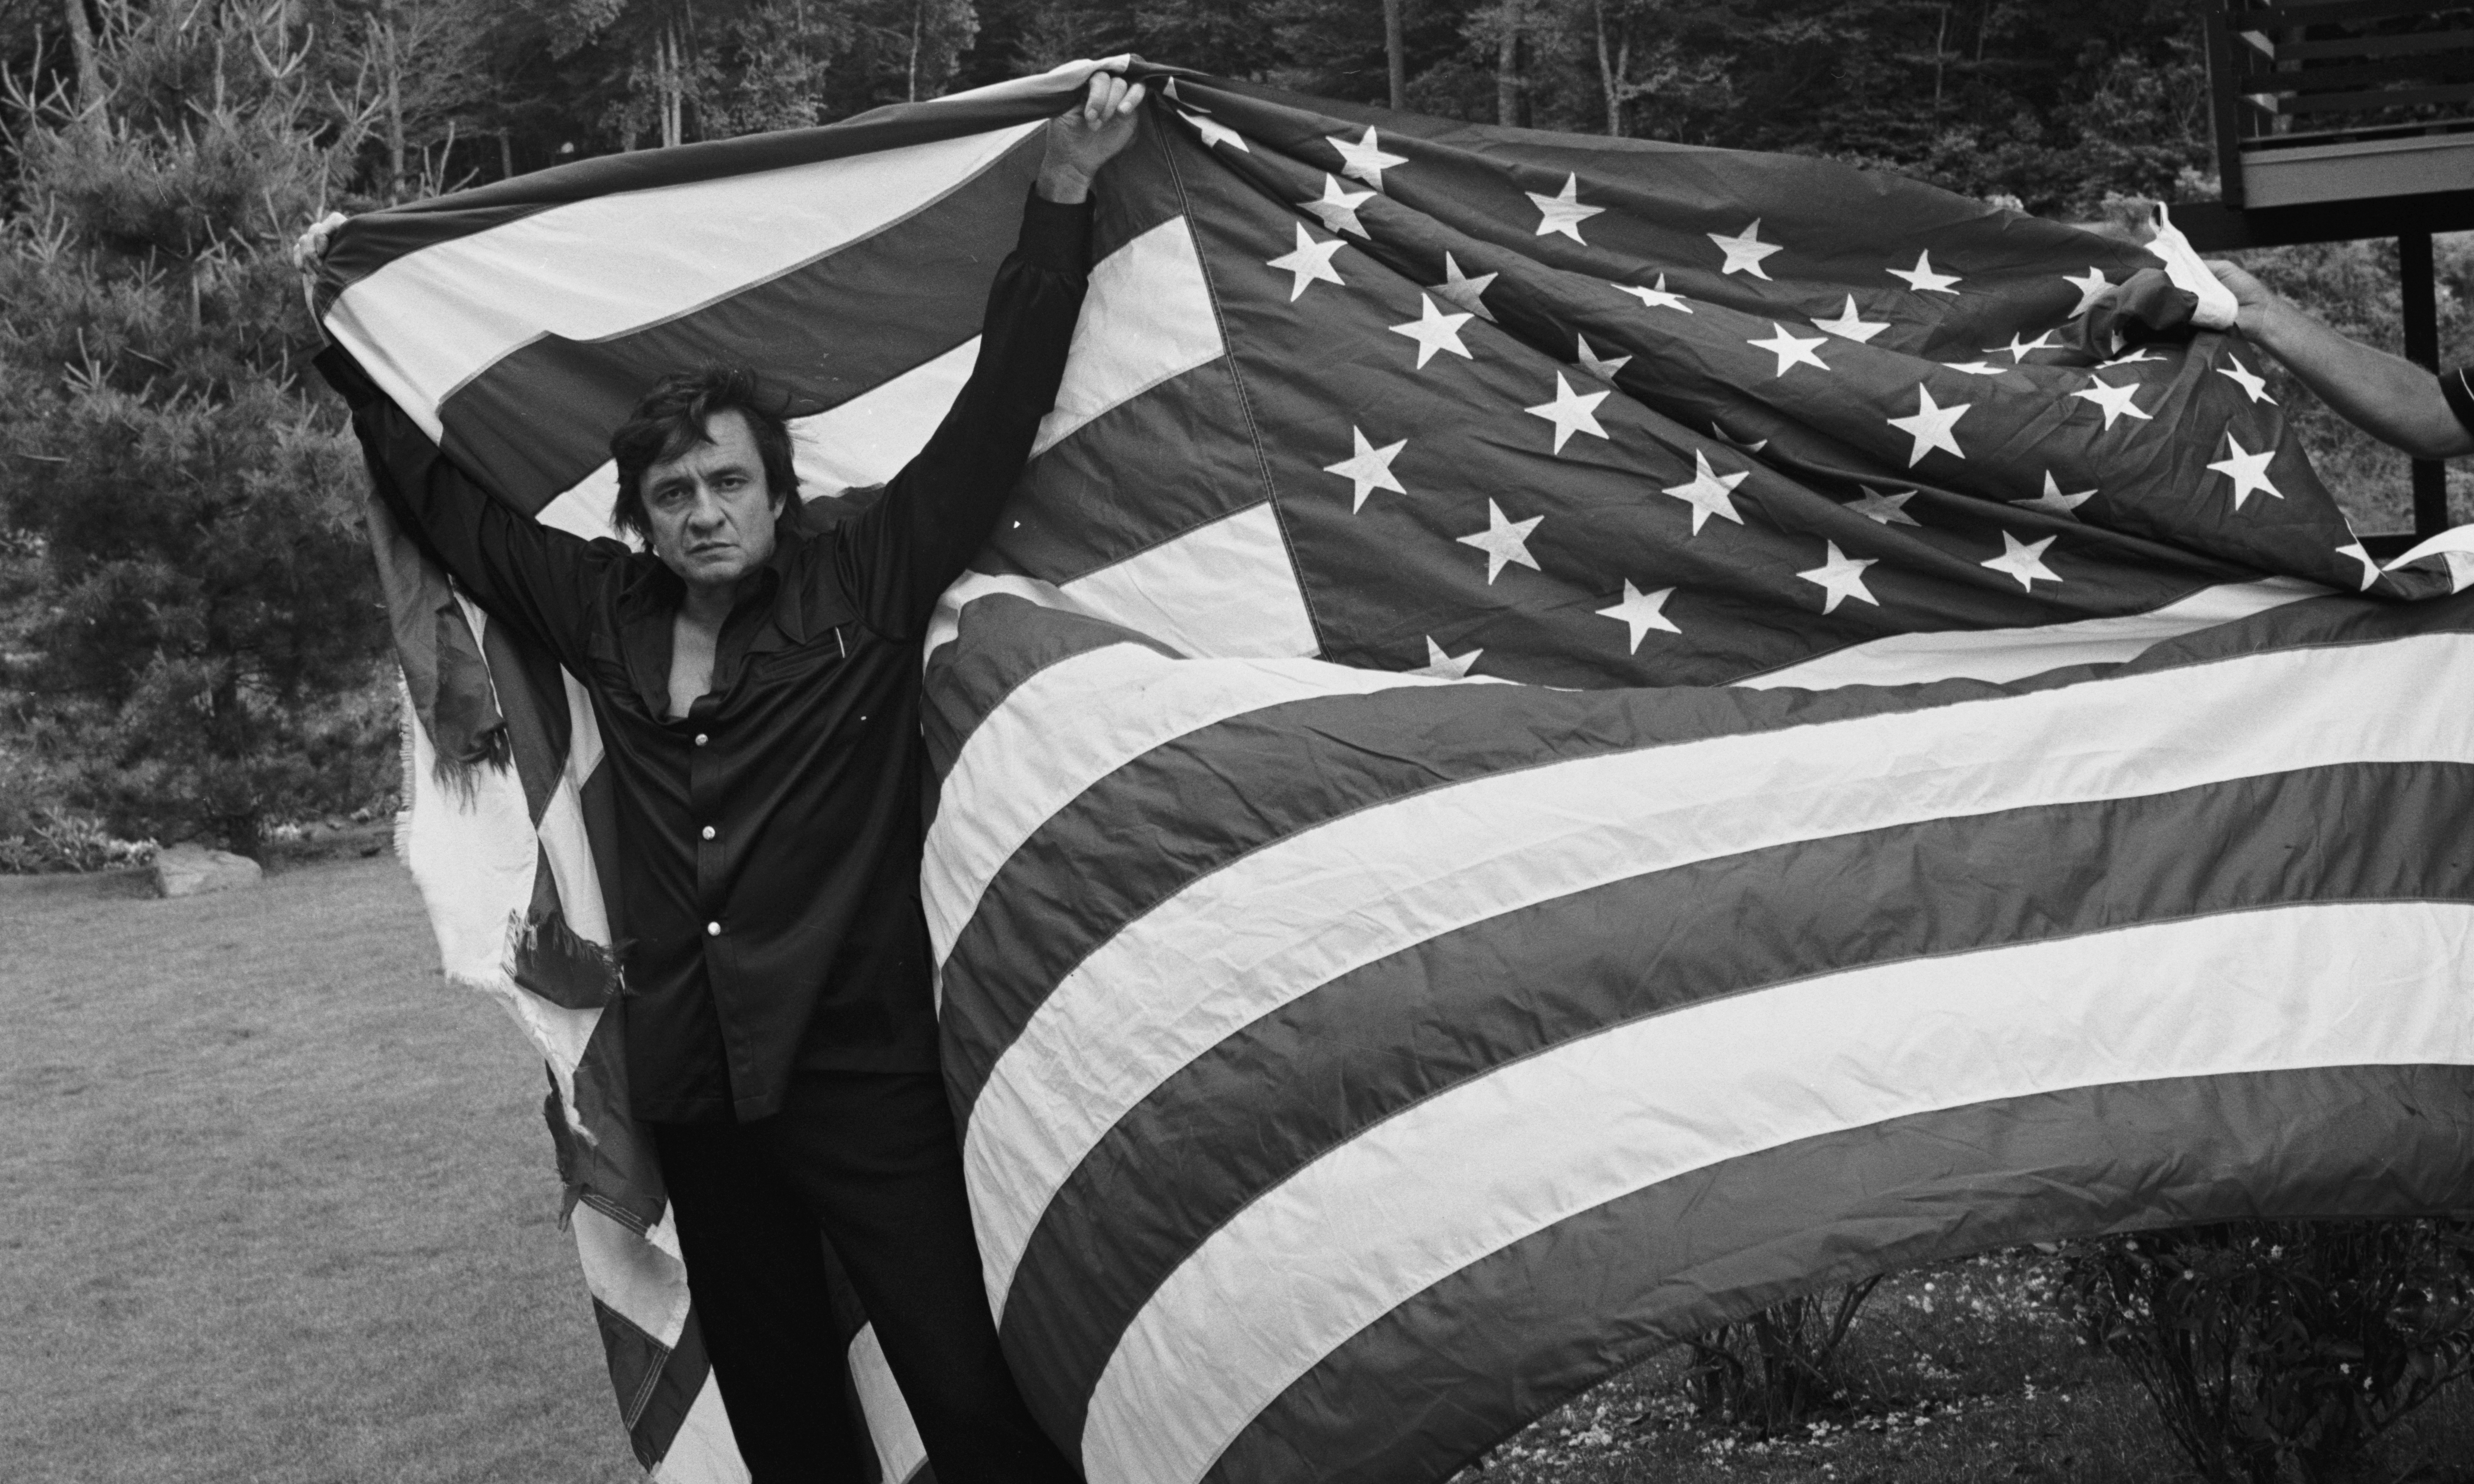 Johnny Cash holds up a large American flag as it unfurls behind him. Photo from the Hugh Morton Photographs in UNC's North Carolina Collection.